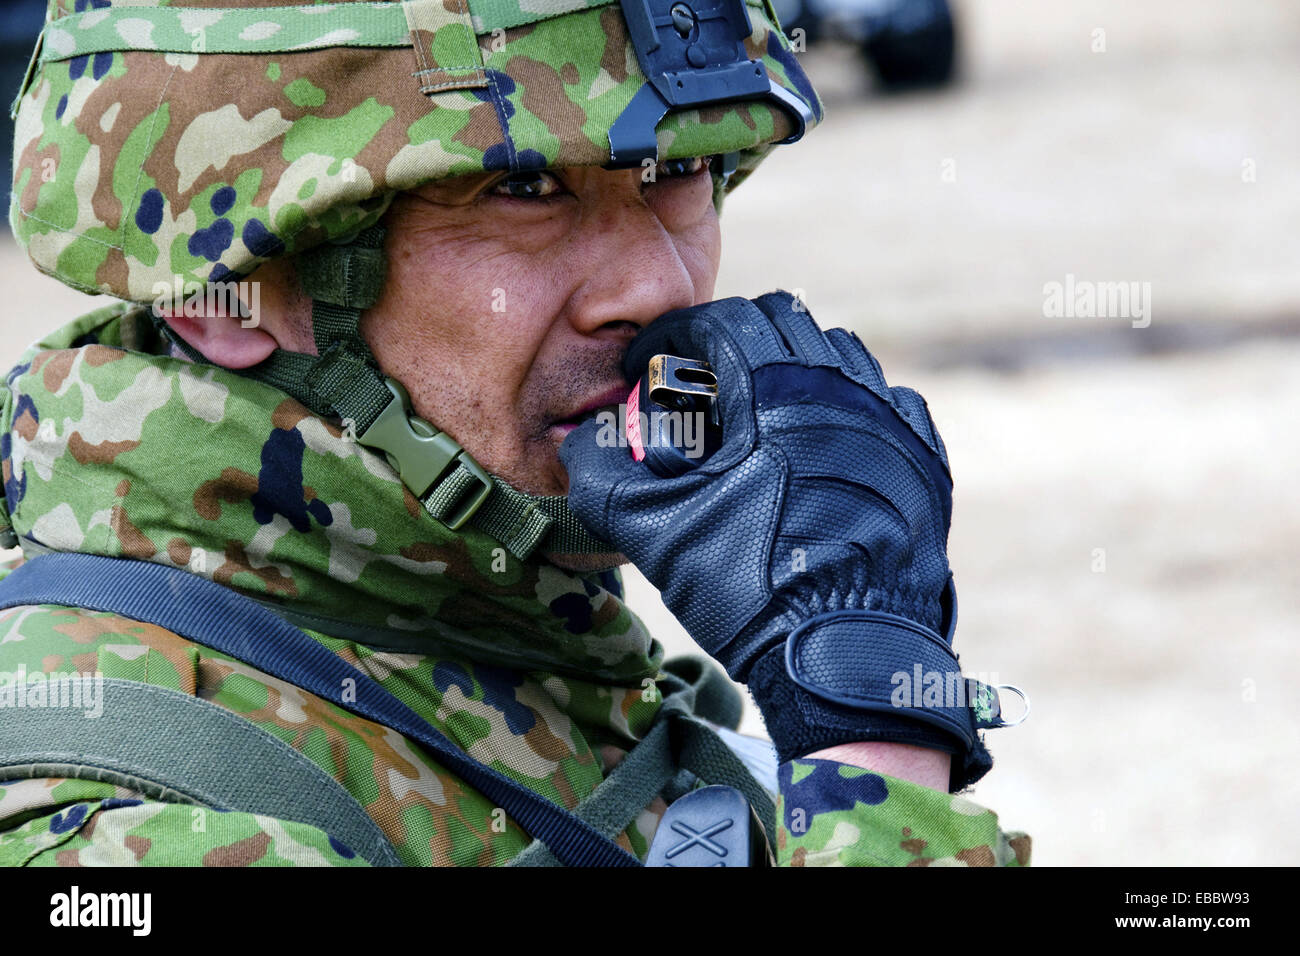 Japan Ground Self-Defense Force 2nd Lt. Fumiko Aizu relays instructions to his troops over a radio during Exercise - Stock Image